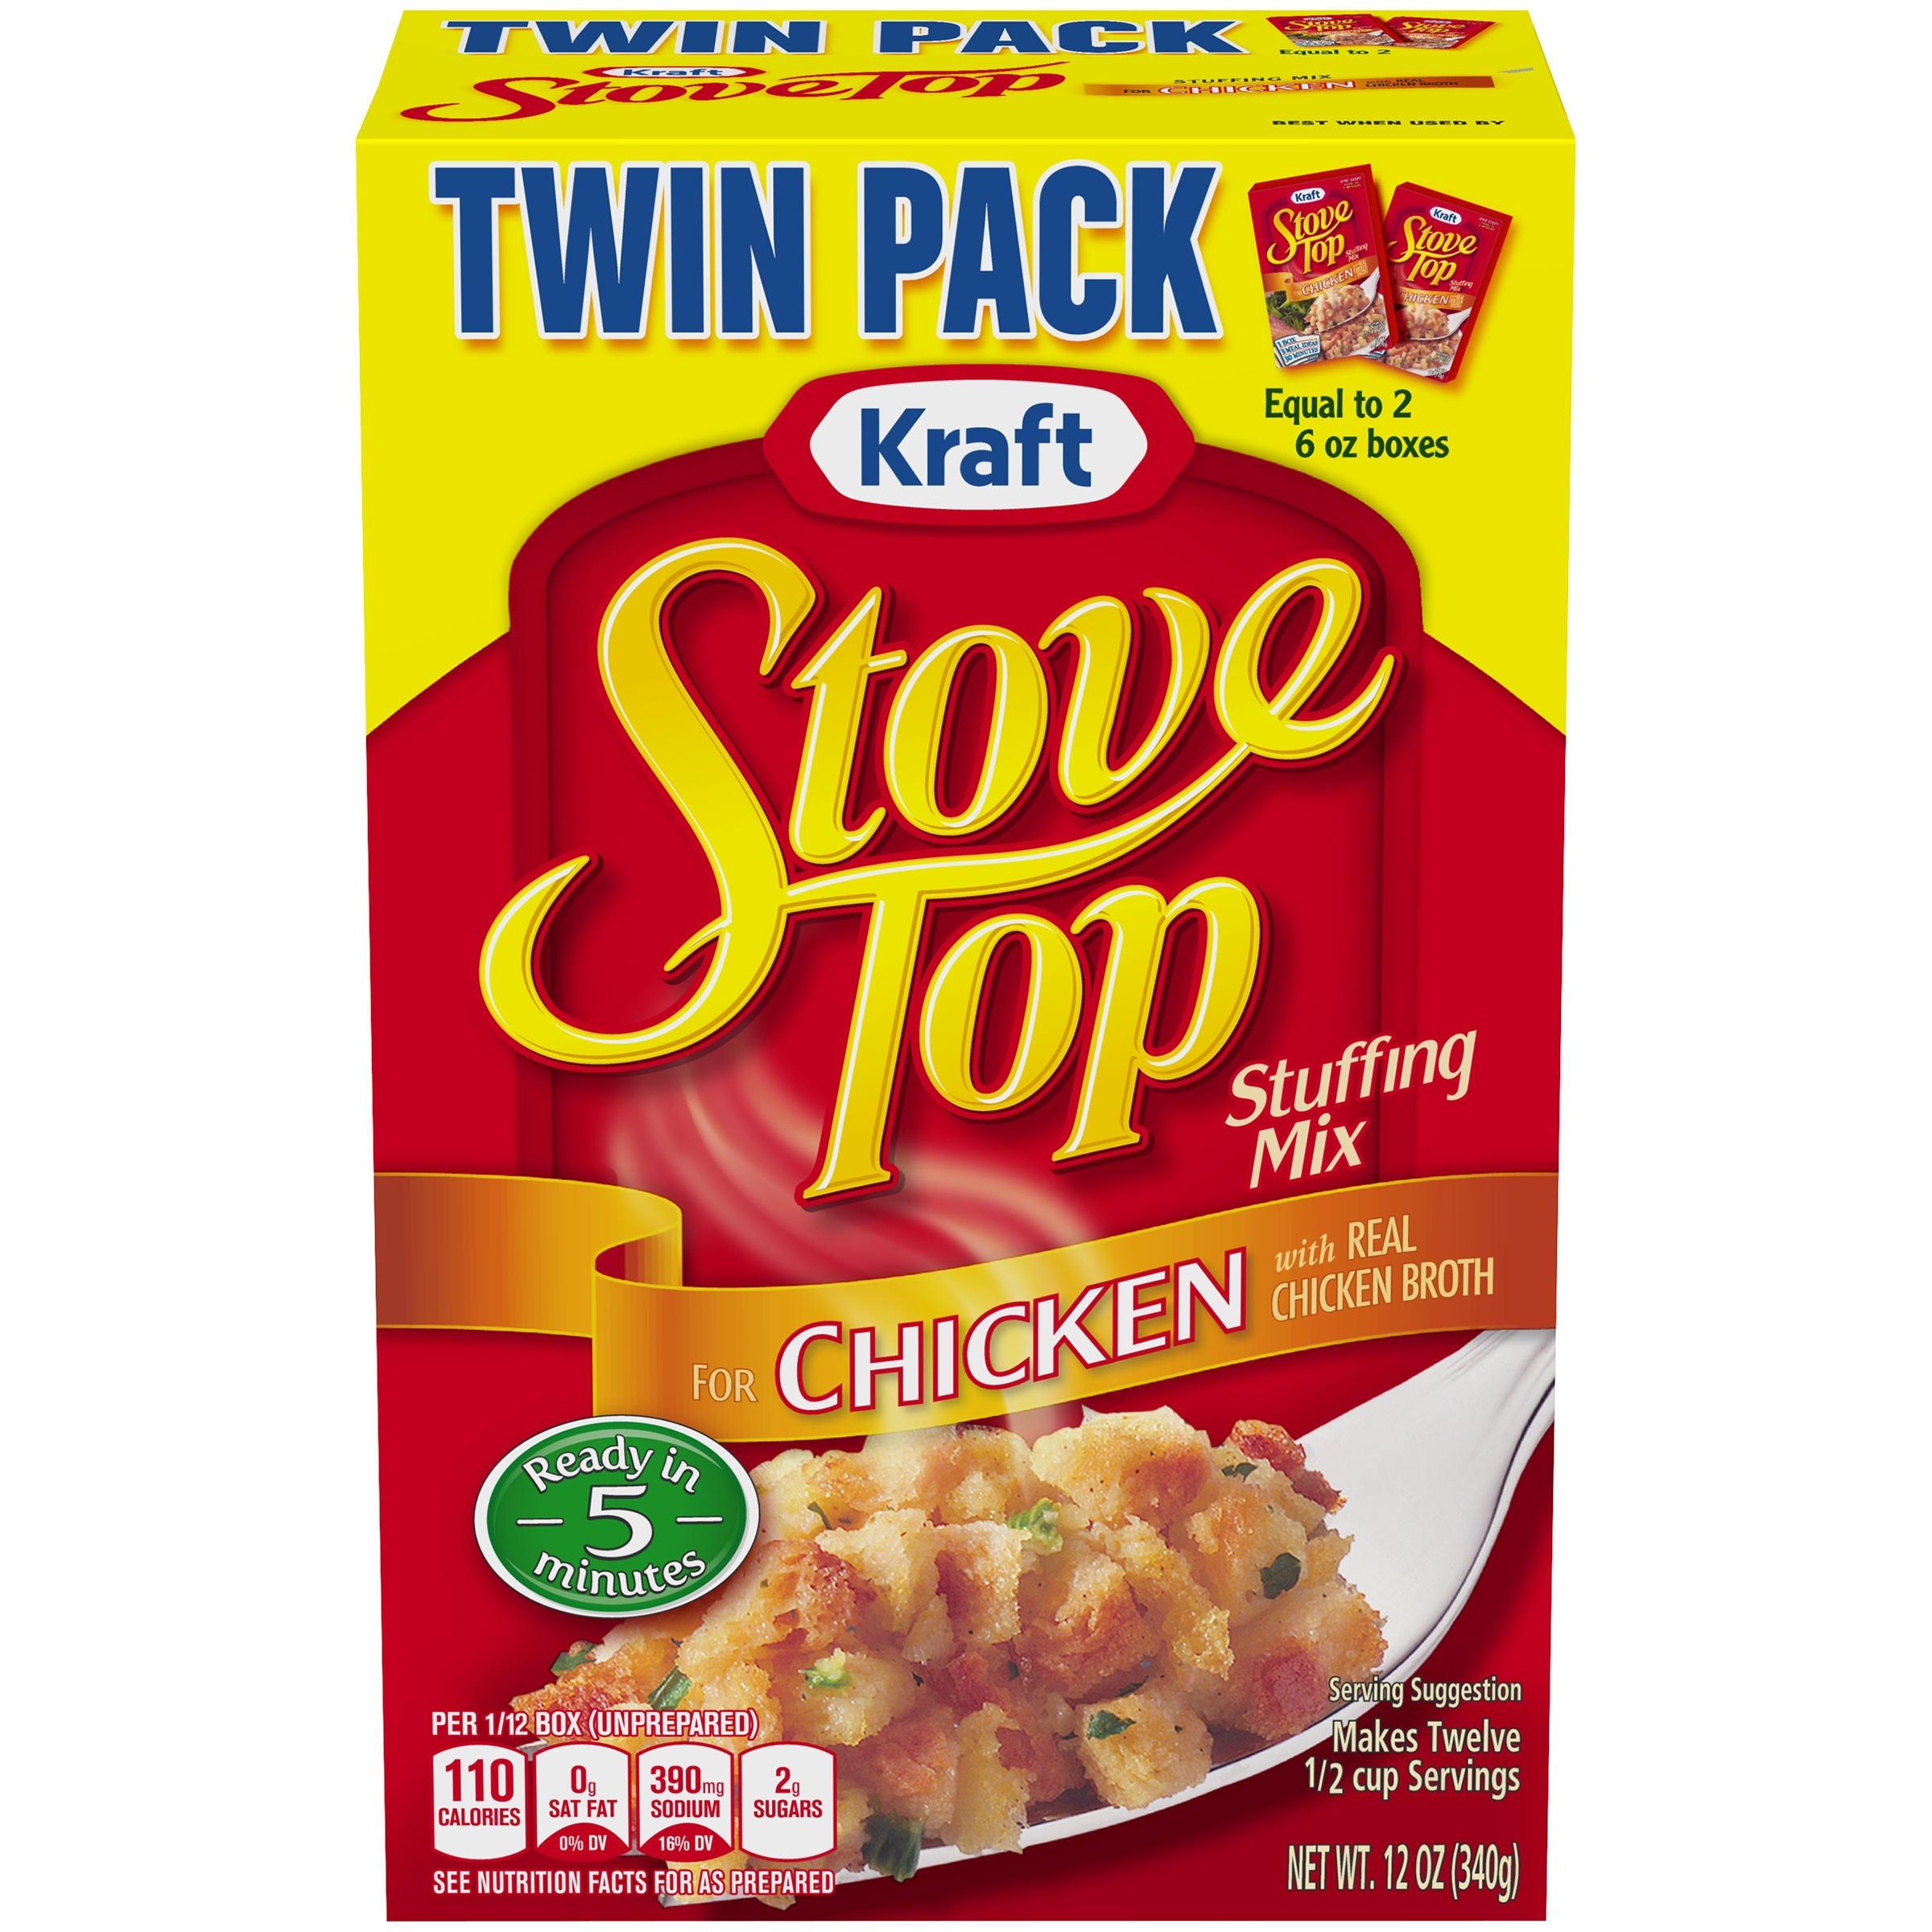 Kraft Stove Top Twin Pack Stuffing Mix for Chicken 12 oz. Box